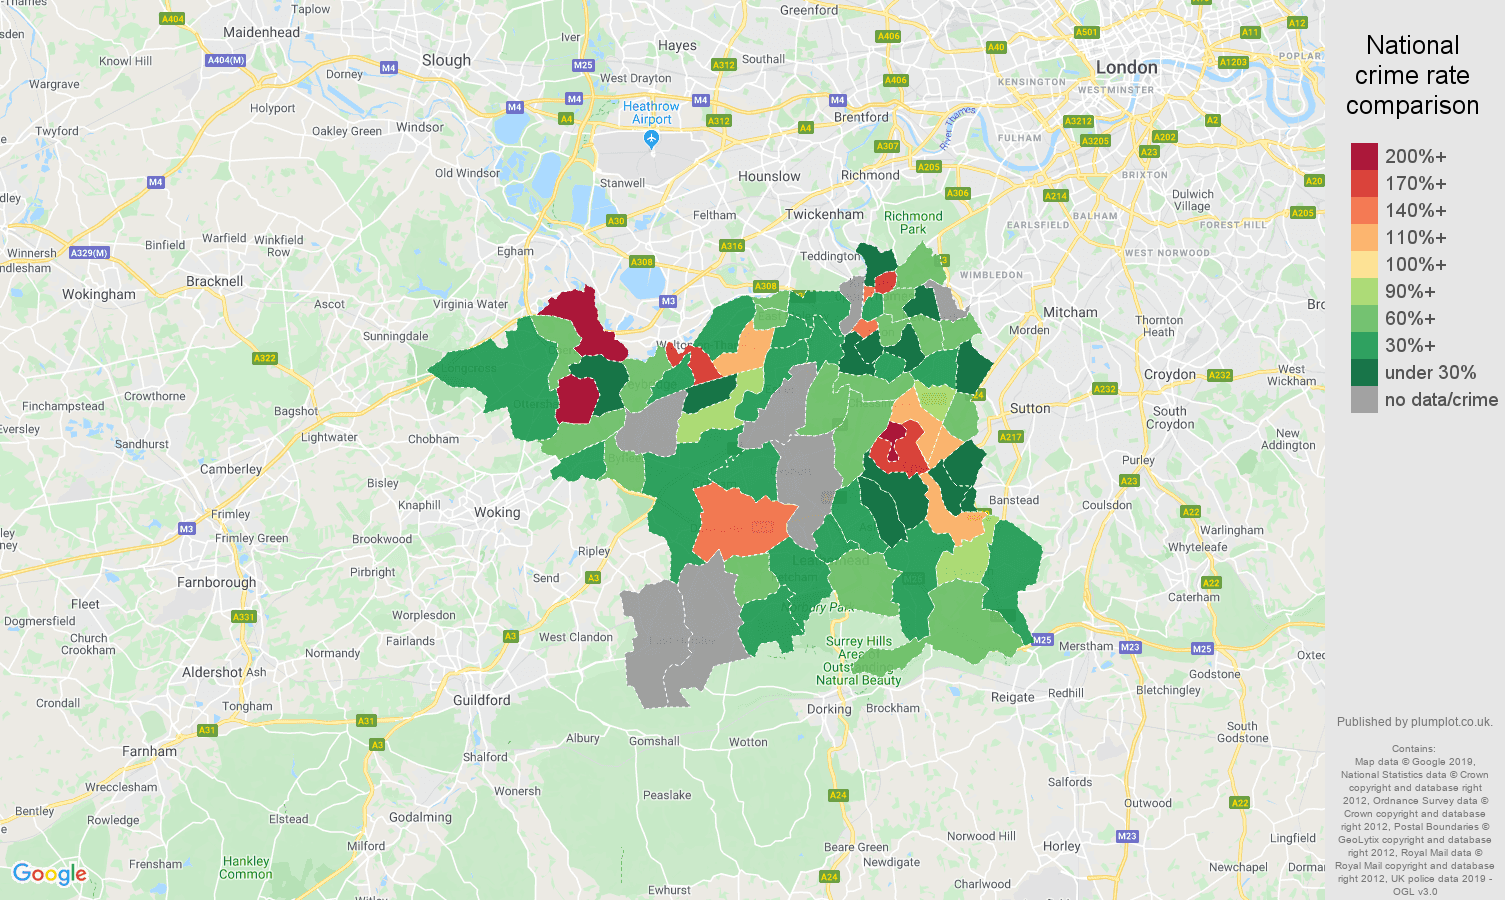 Kingston upon Thames possession of weapons crime rate comparison map